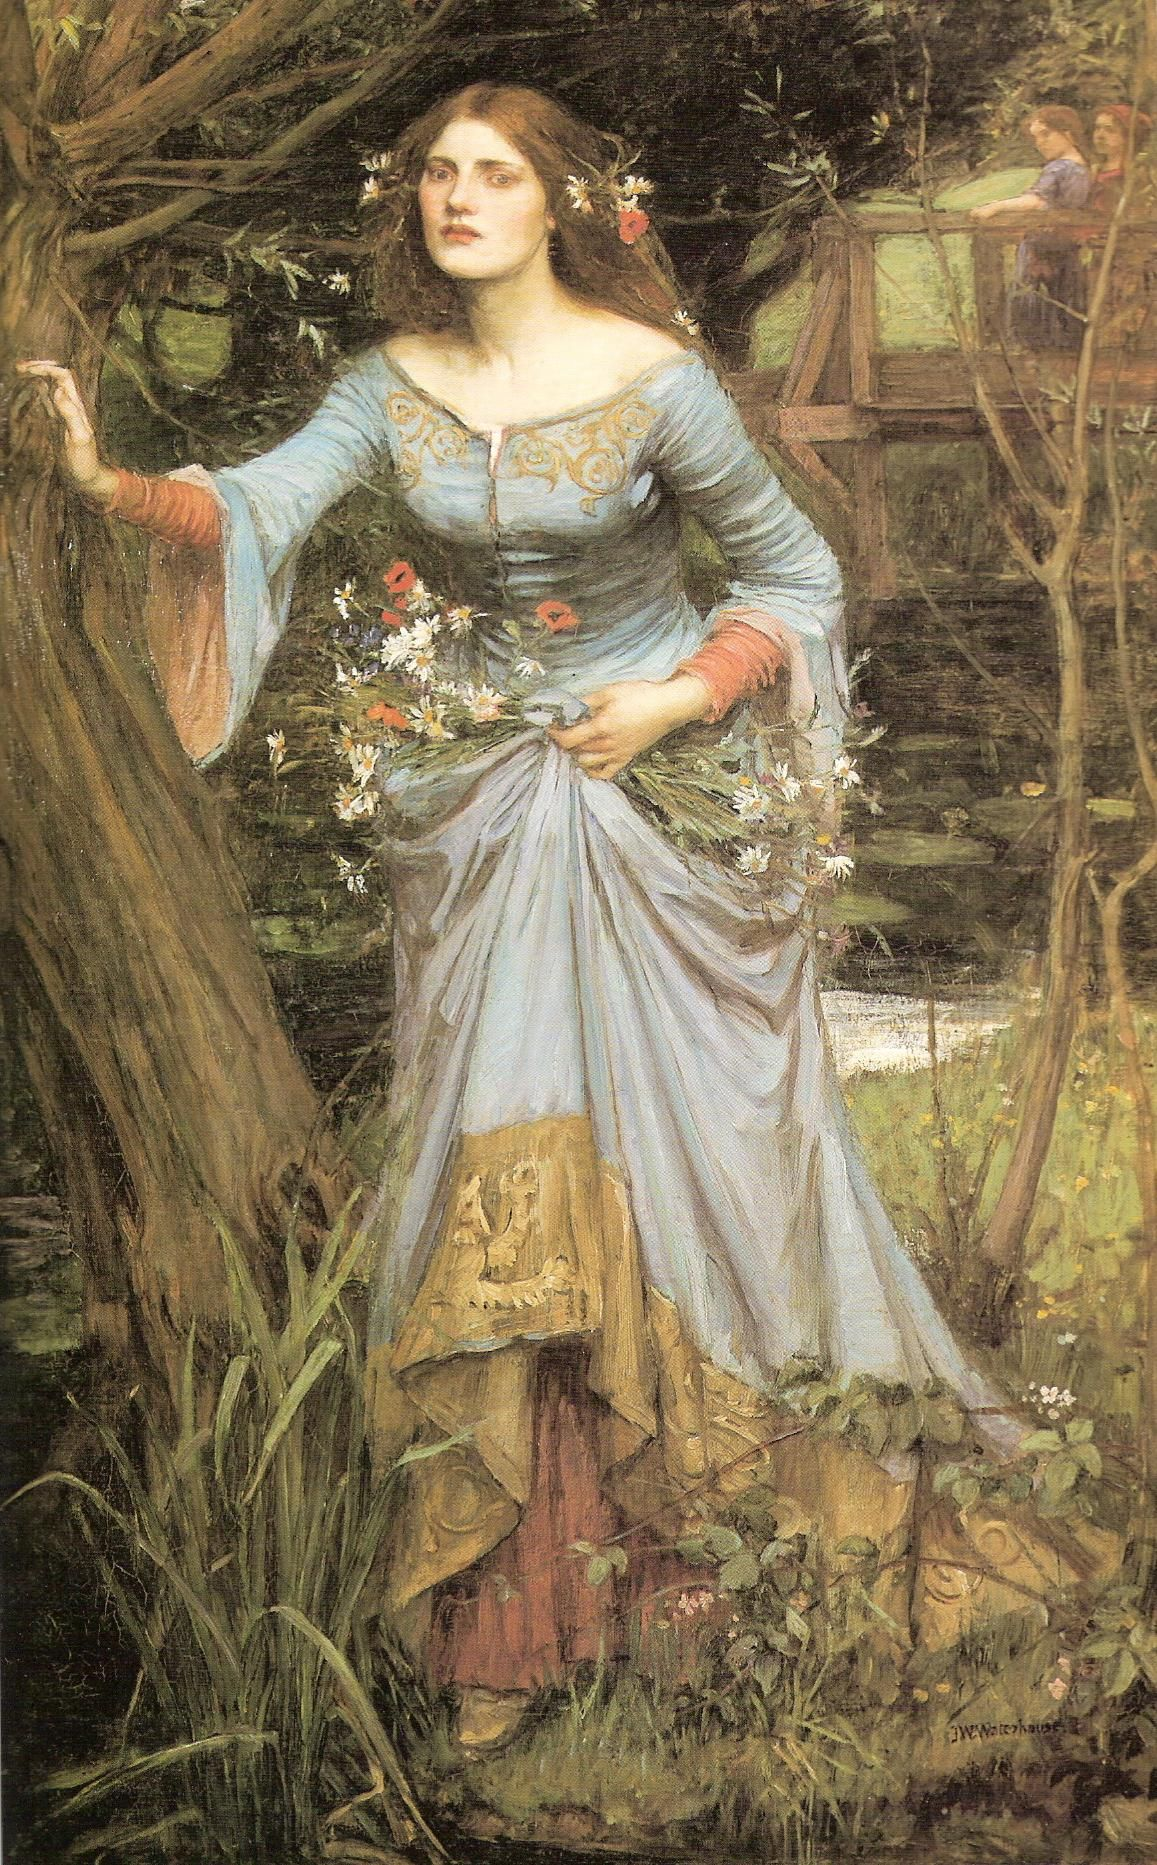 Ophelia - John William Waterhouse